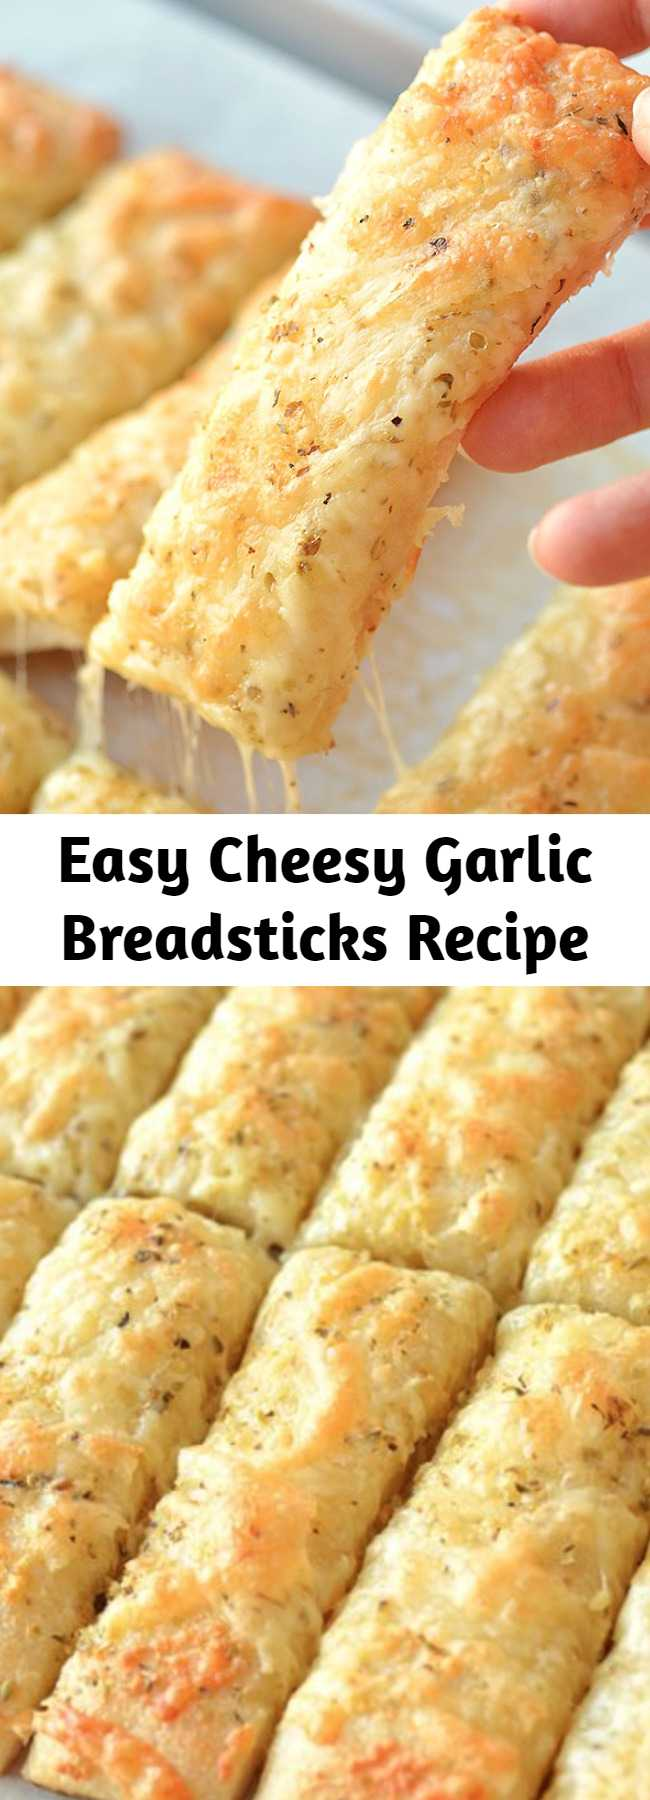 Easy Cheesy Garlic Breadsticks Recipe - These cheesy garlic breadsticks are so easy to make and they taste SO GOOD! This is such an easy, awesome and super delicious side dish recipe that uses Pillsbury refrigerated pizza crust. They take less than 20 minutes from start to finish and go really well with your favorite soups and salads.